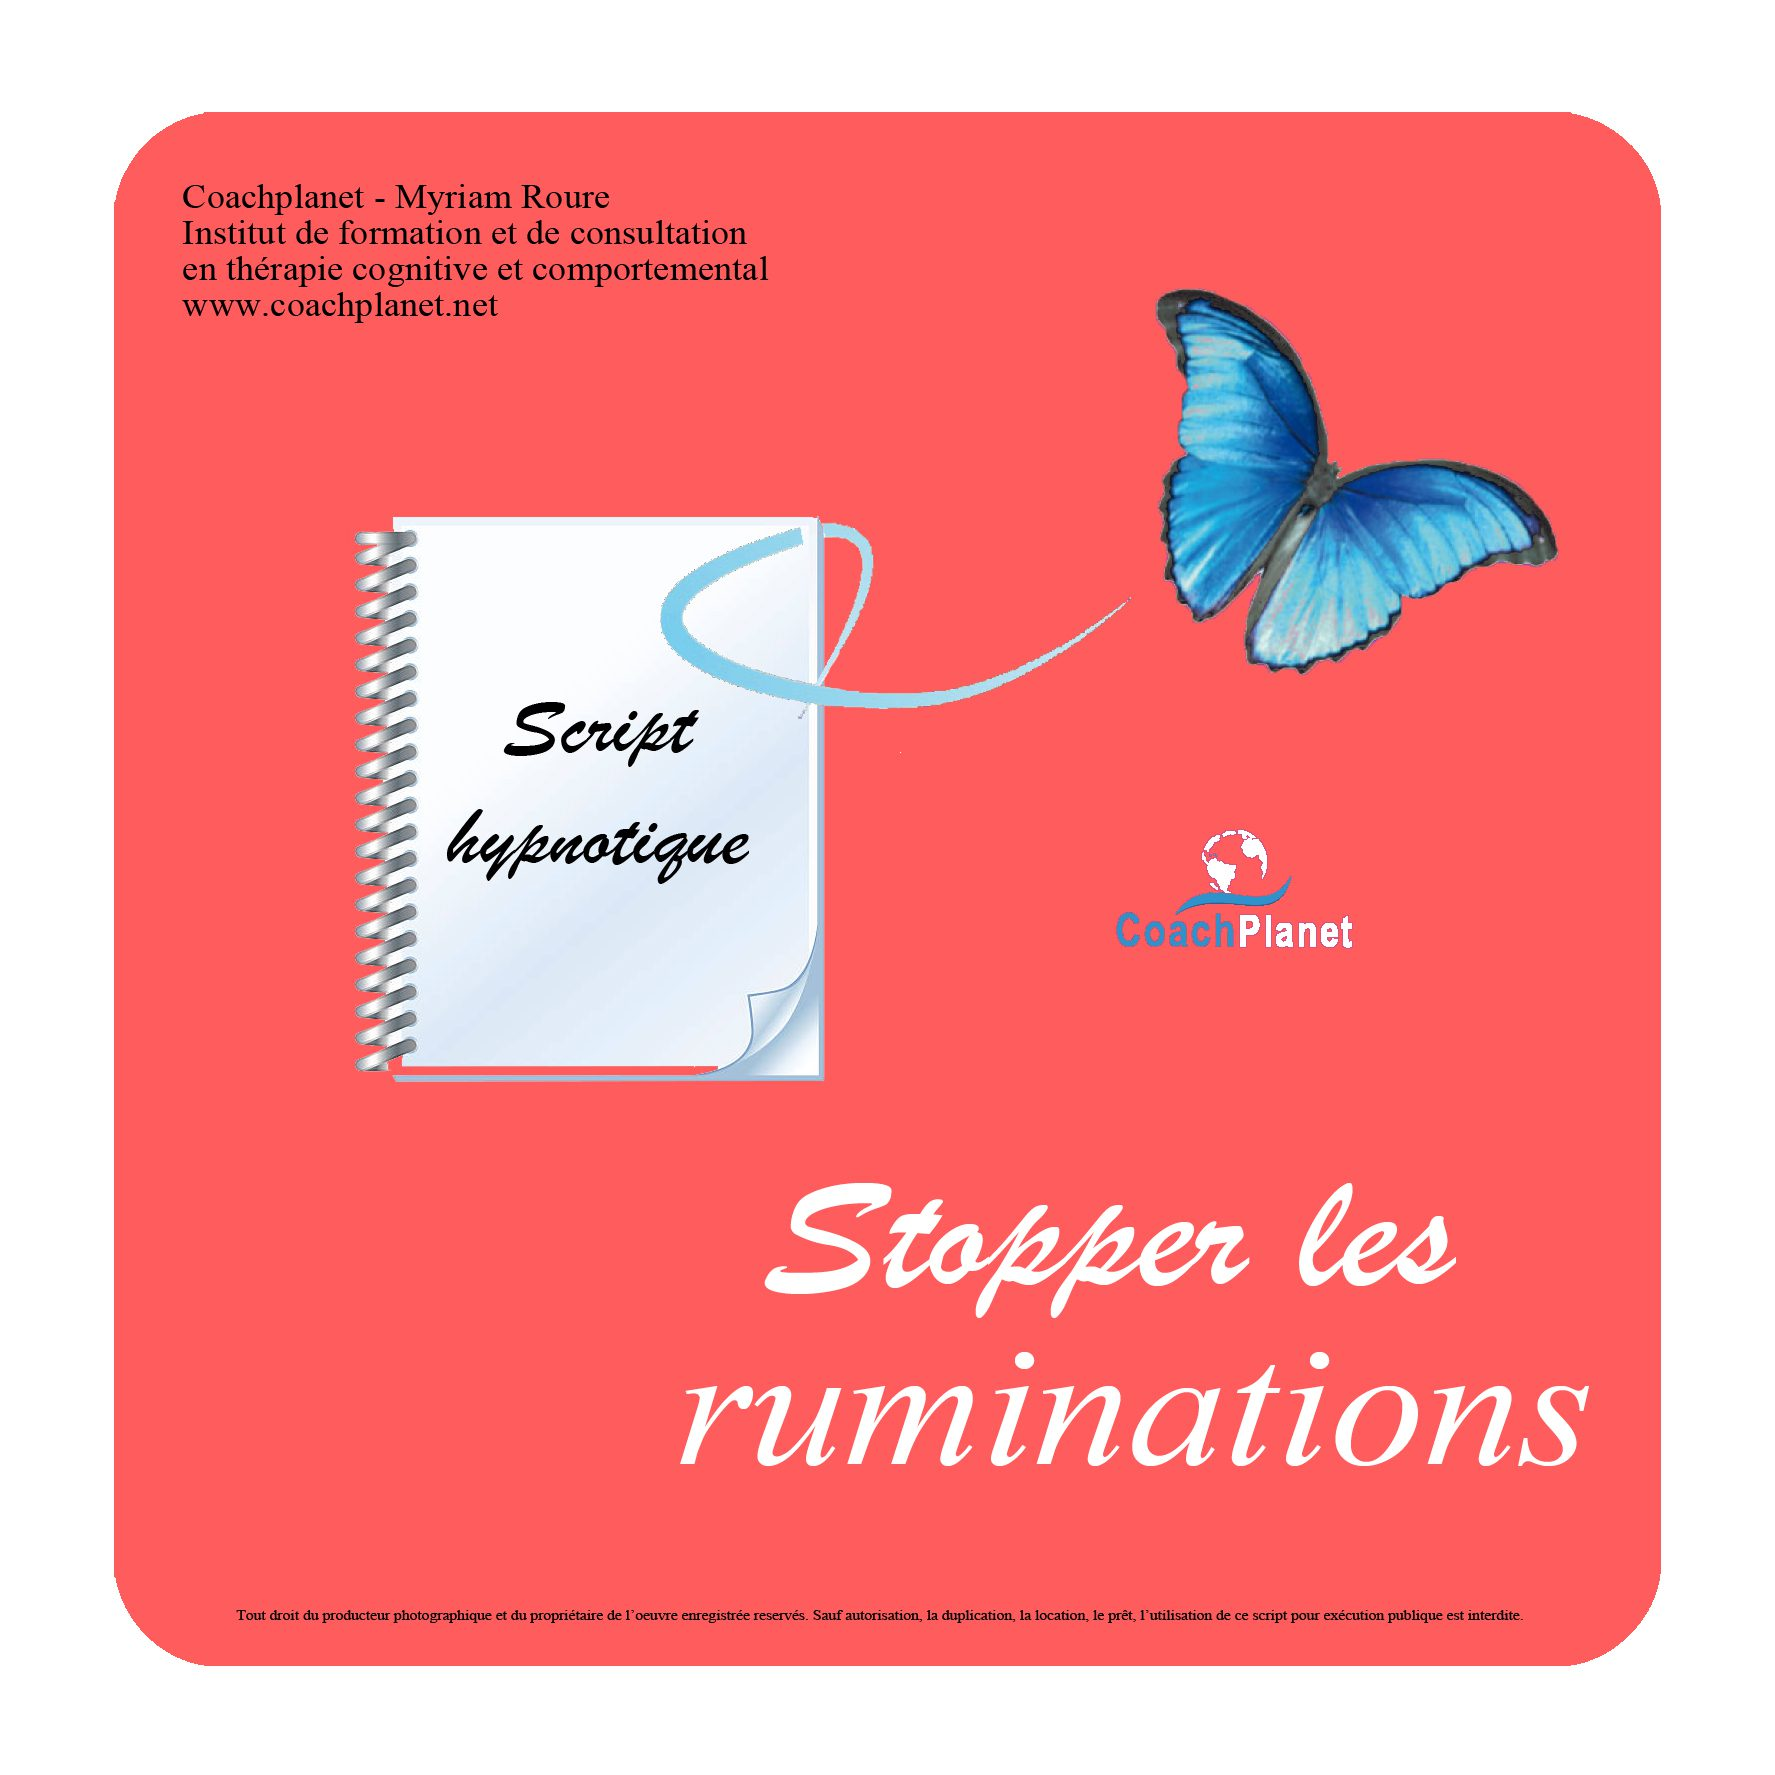 Stopper-les-ruminations copie